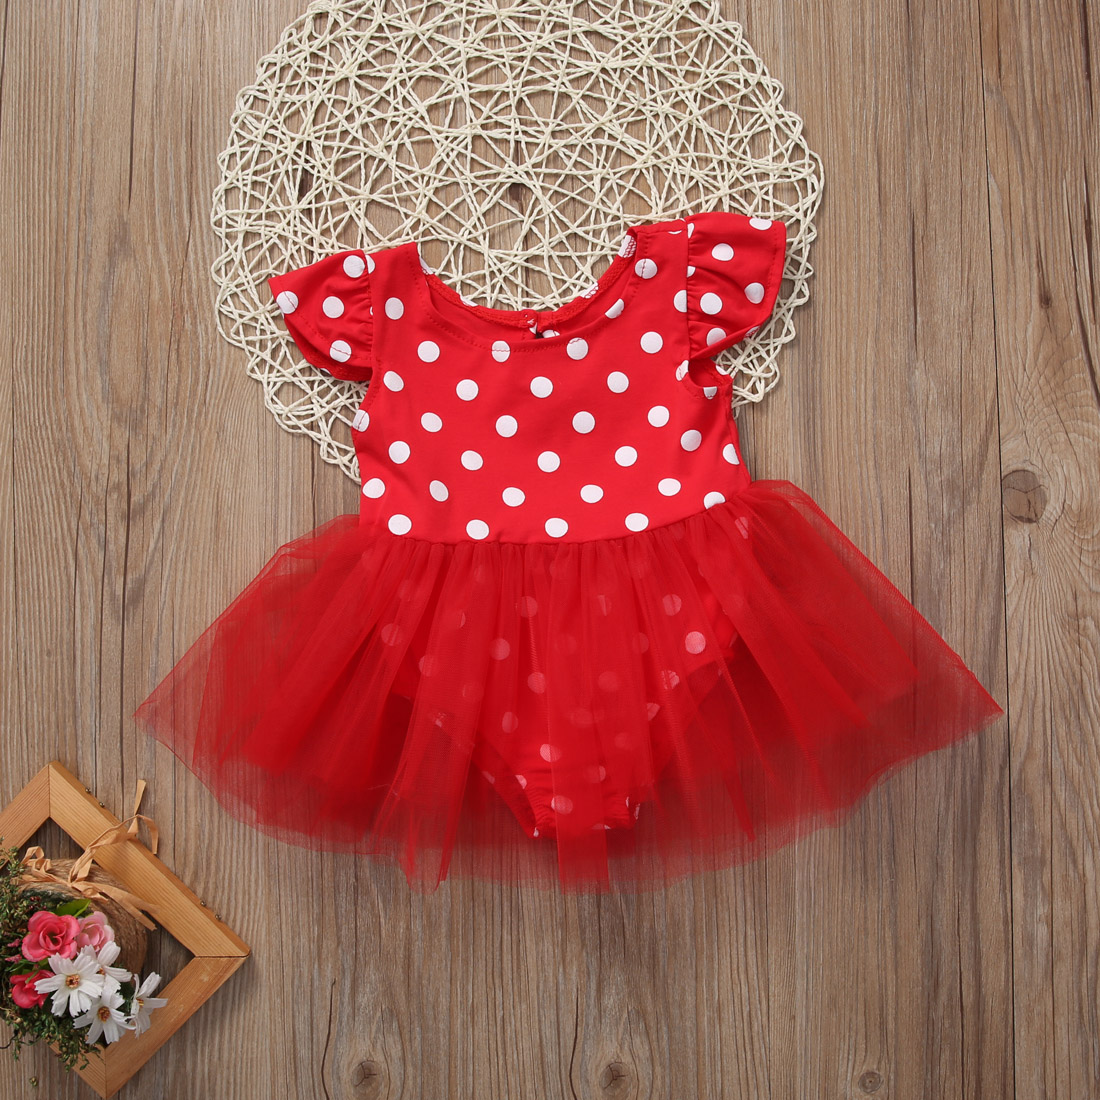 d1023eae59c 2017 Toddler Kid Baby Girls Dress Polka Dot Sundress Red Playsuit Mesh Tutu  Summer Party Dresses Age 0 3Years-in Dresses from Mother   Kids on ...